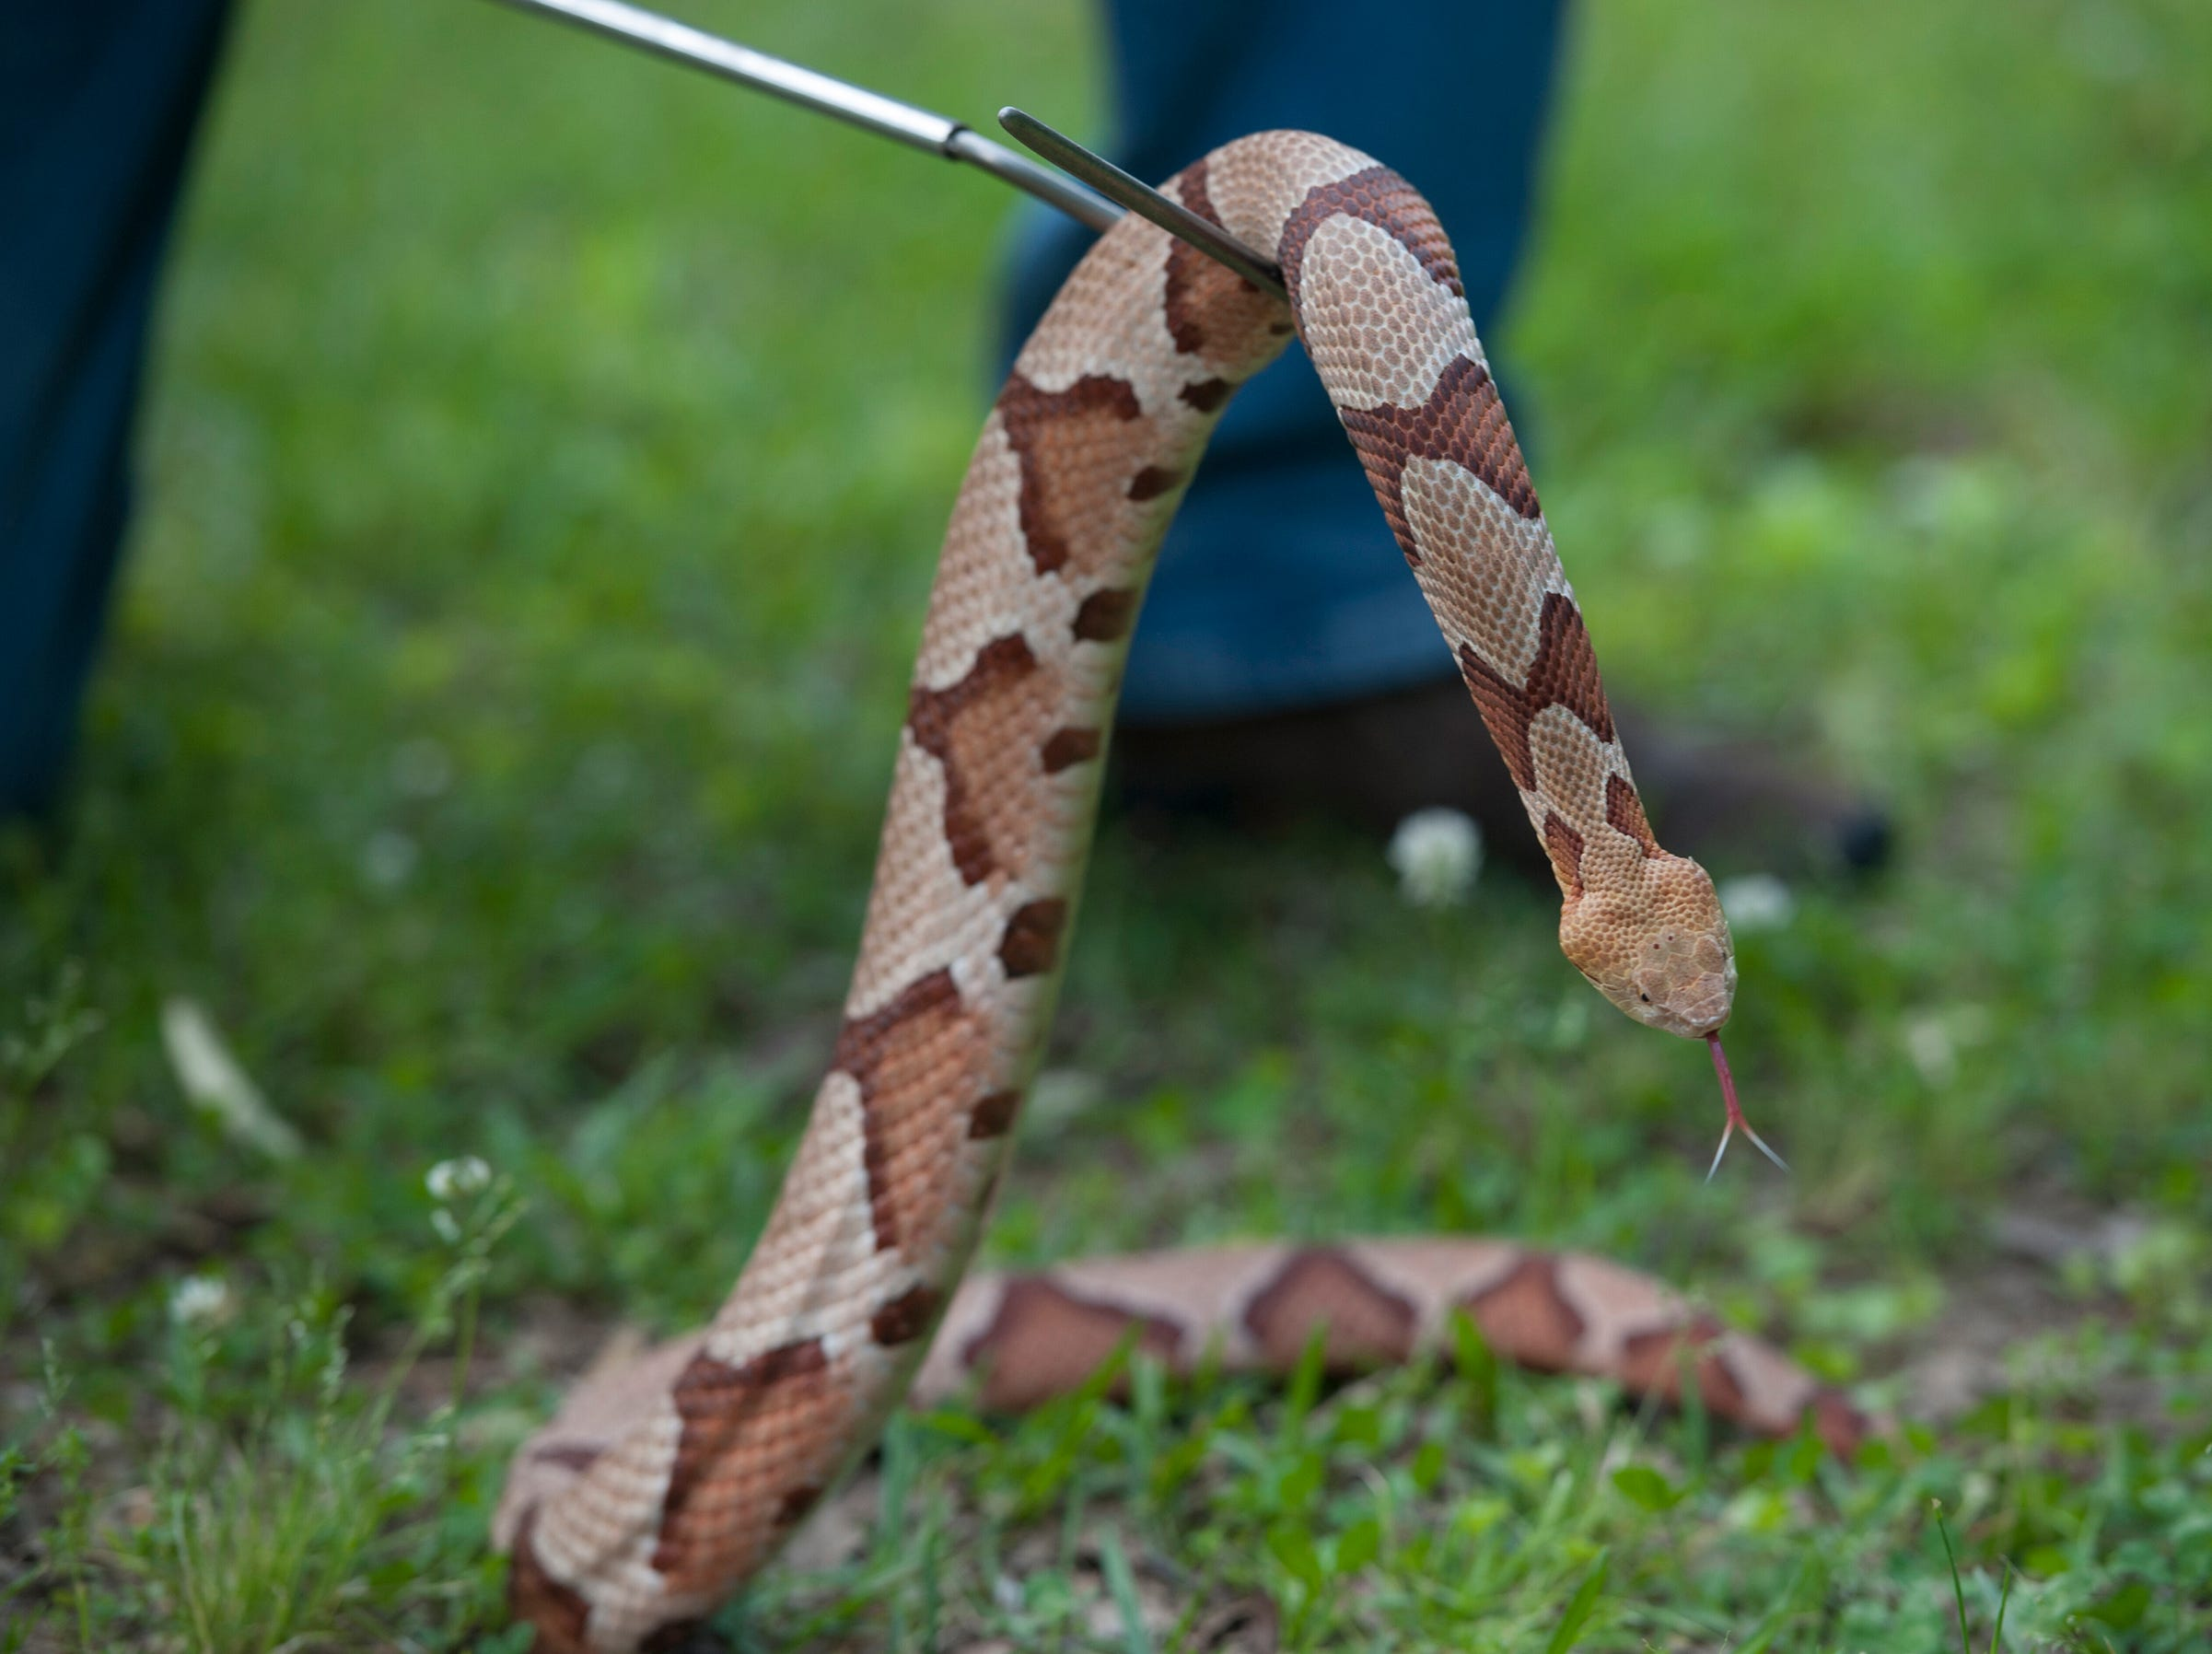 The venomous copperhead can be identified by the marking on its back. Some people think the markings look like hourglasses, saddlebags, dog biscuits or Hershey's kisses.